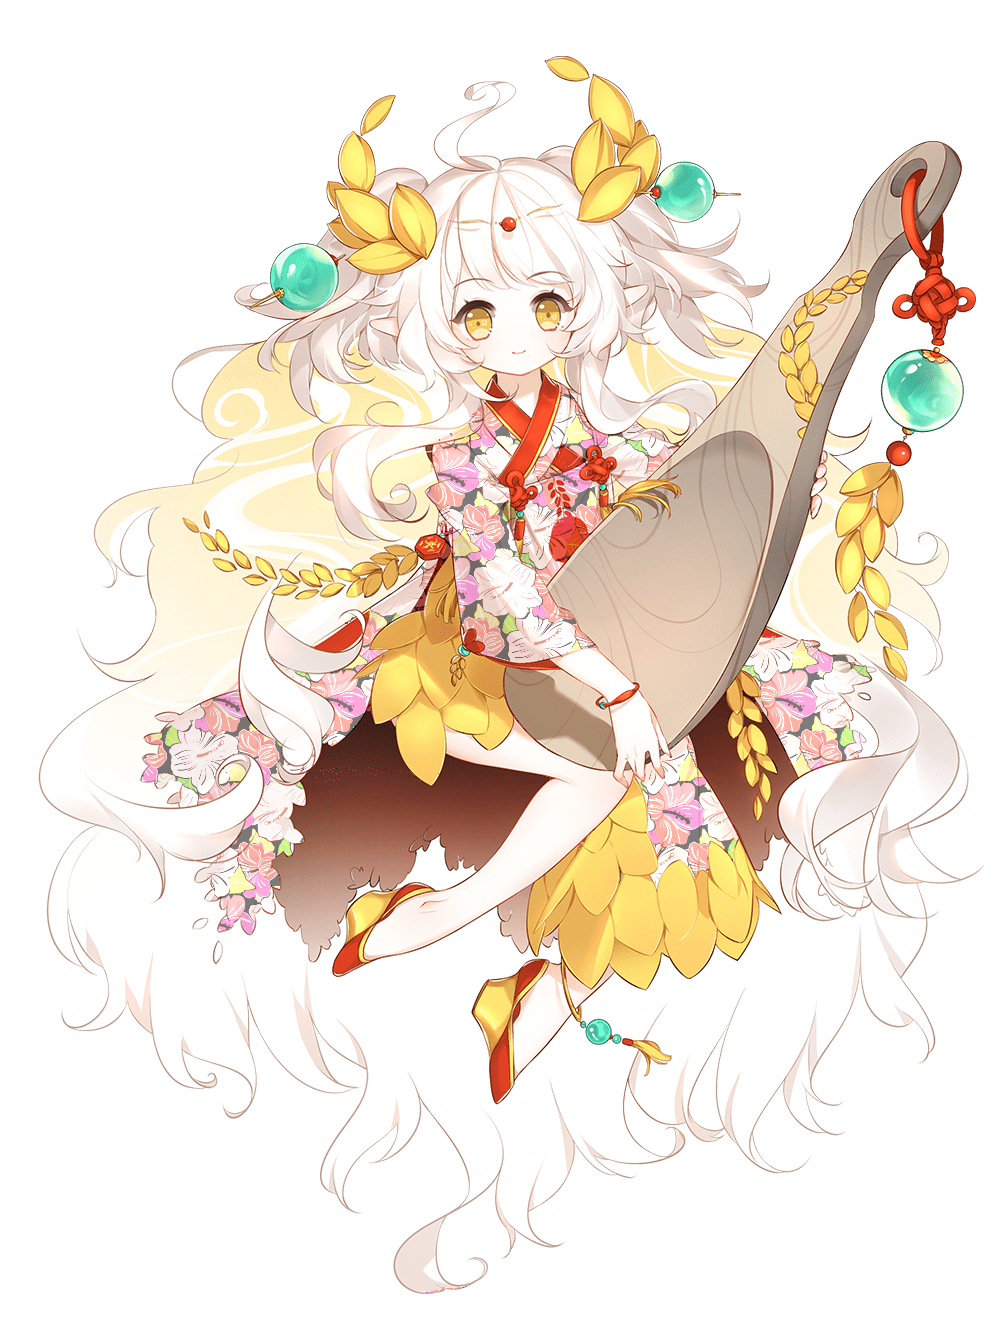 Pin by Tinaht Yonat on Food Fantasy edited characters    in